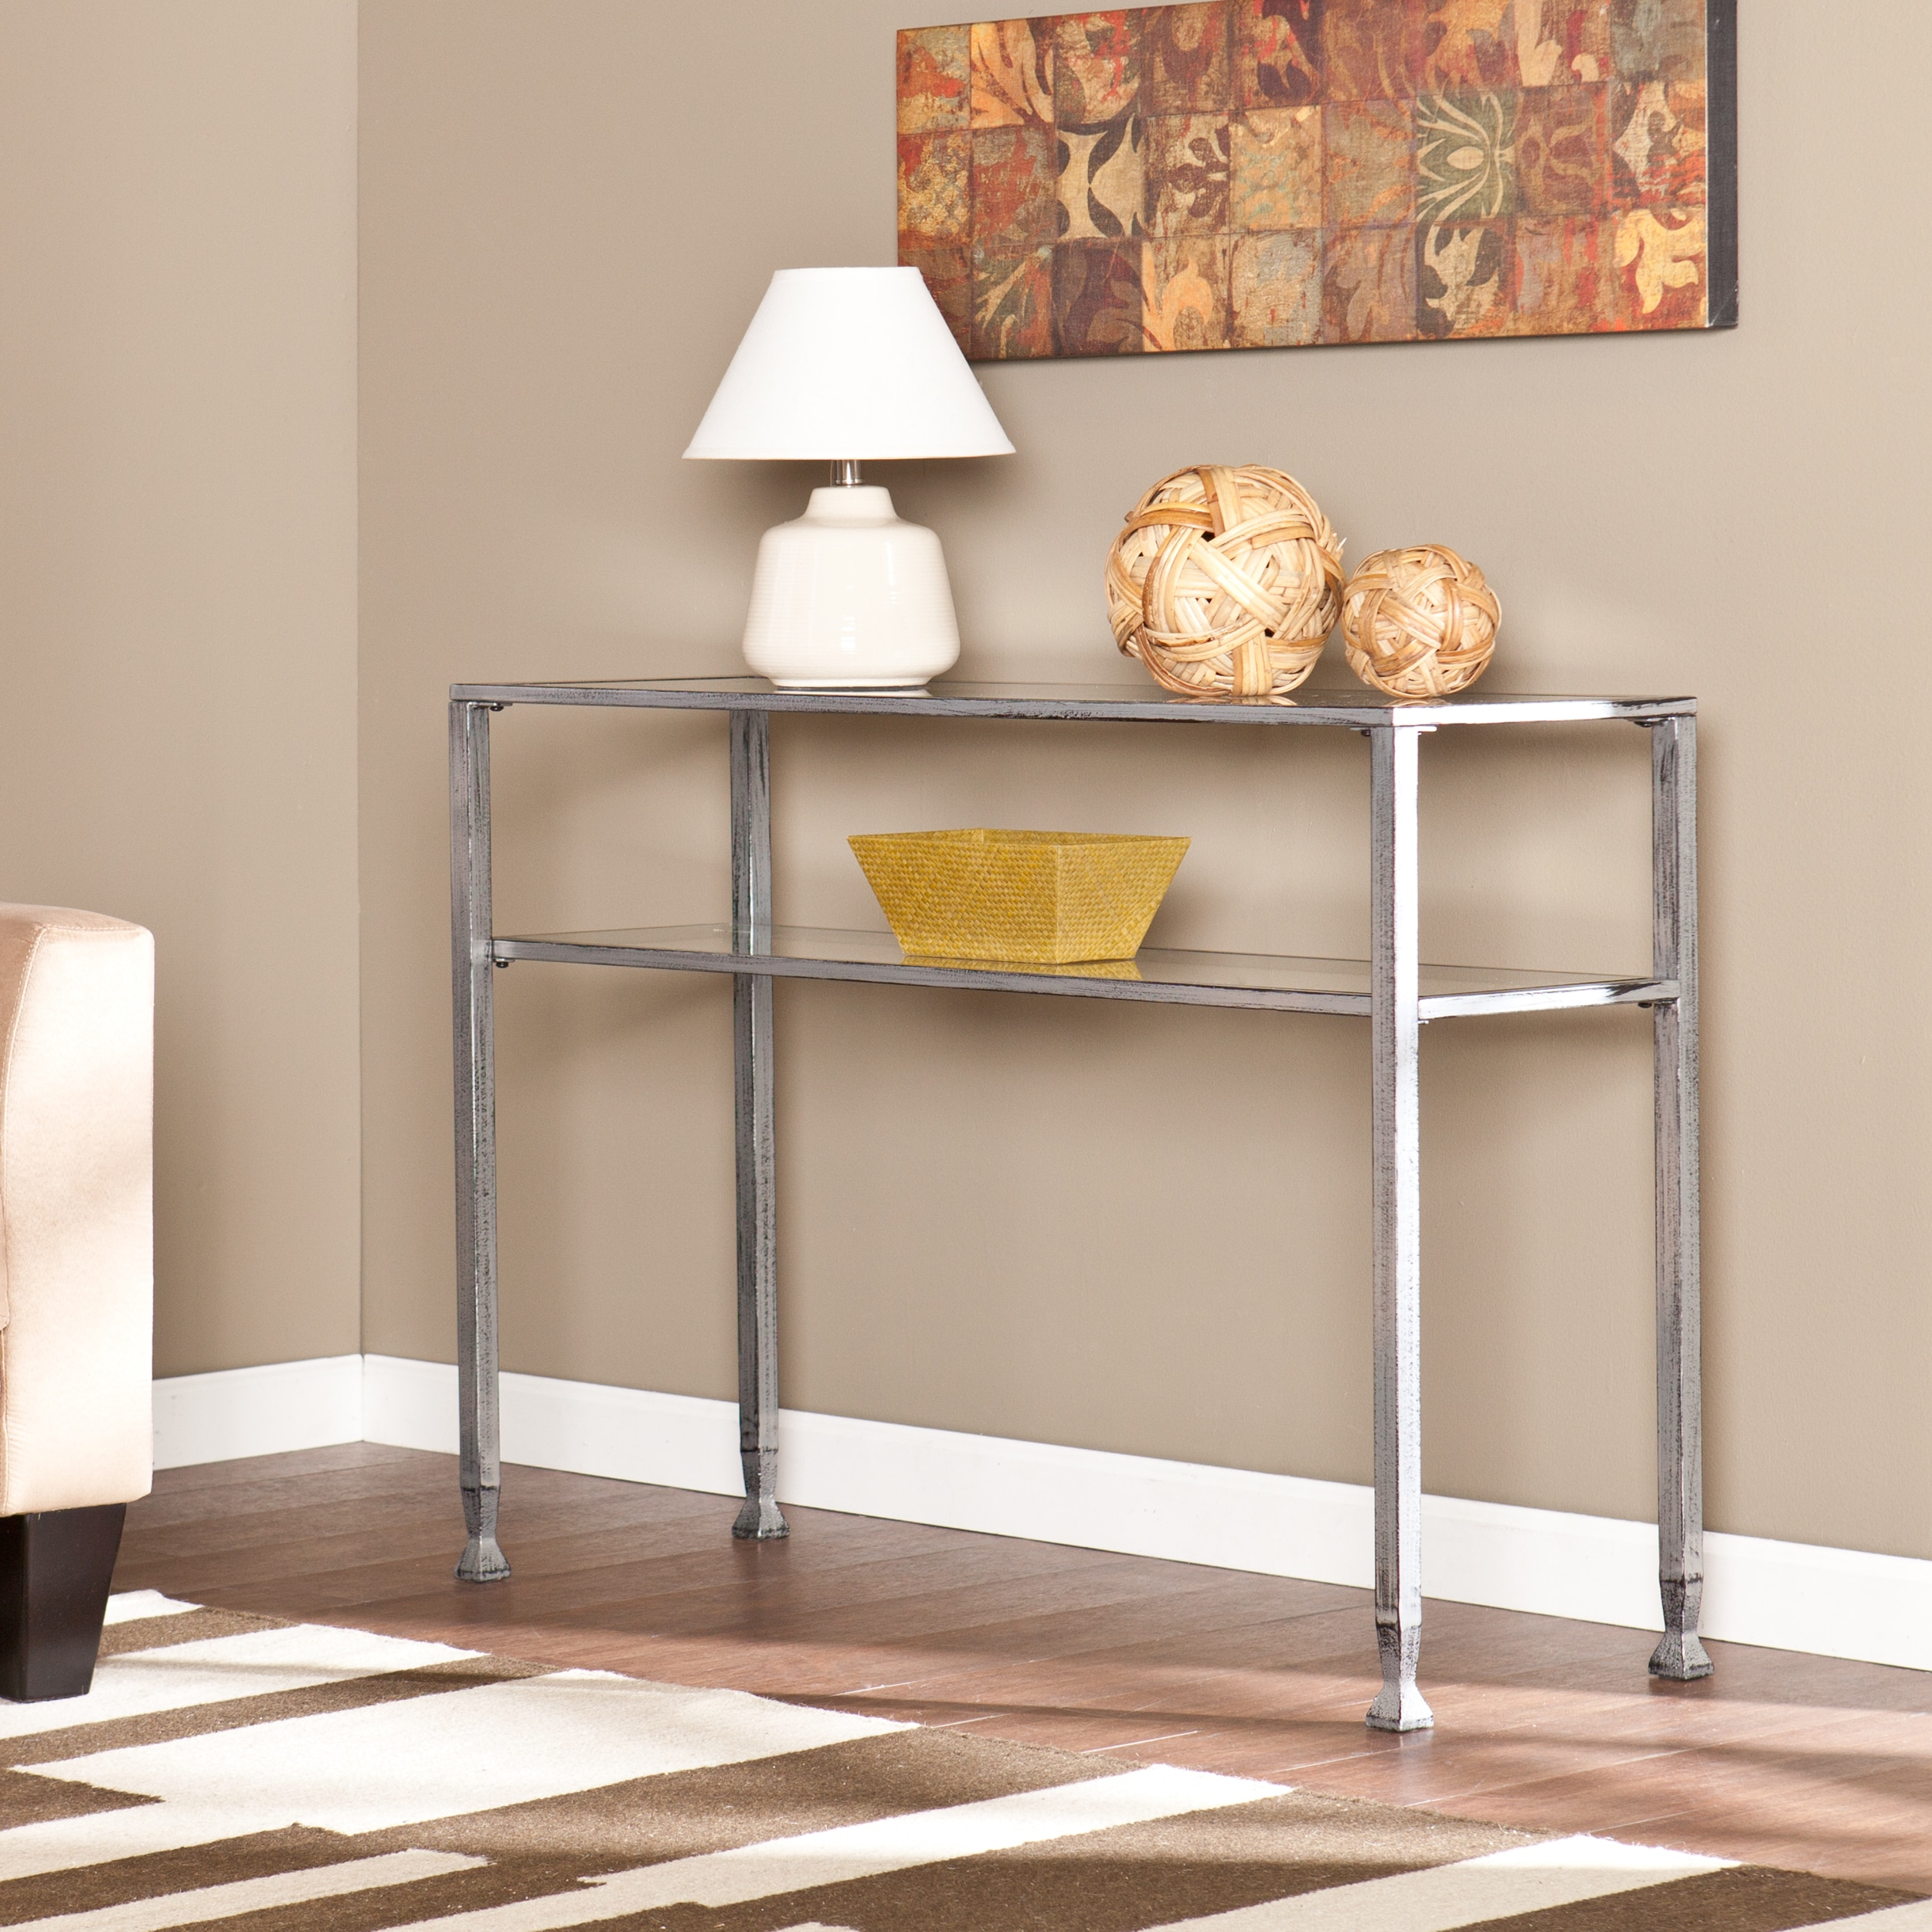 Clay Alder Home Liberty Silver Metal and Glass Console Table